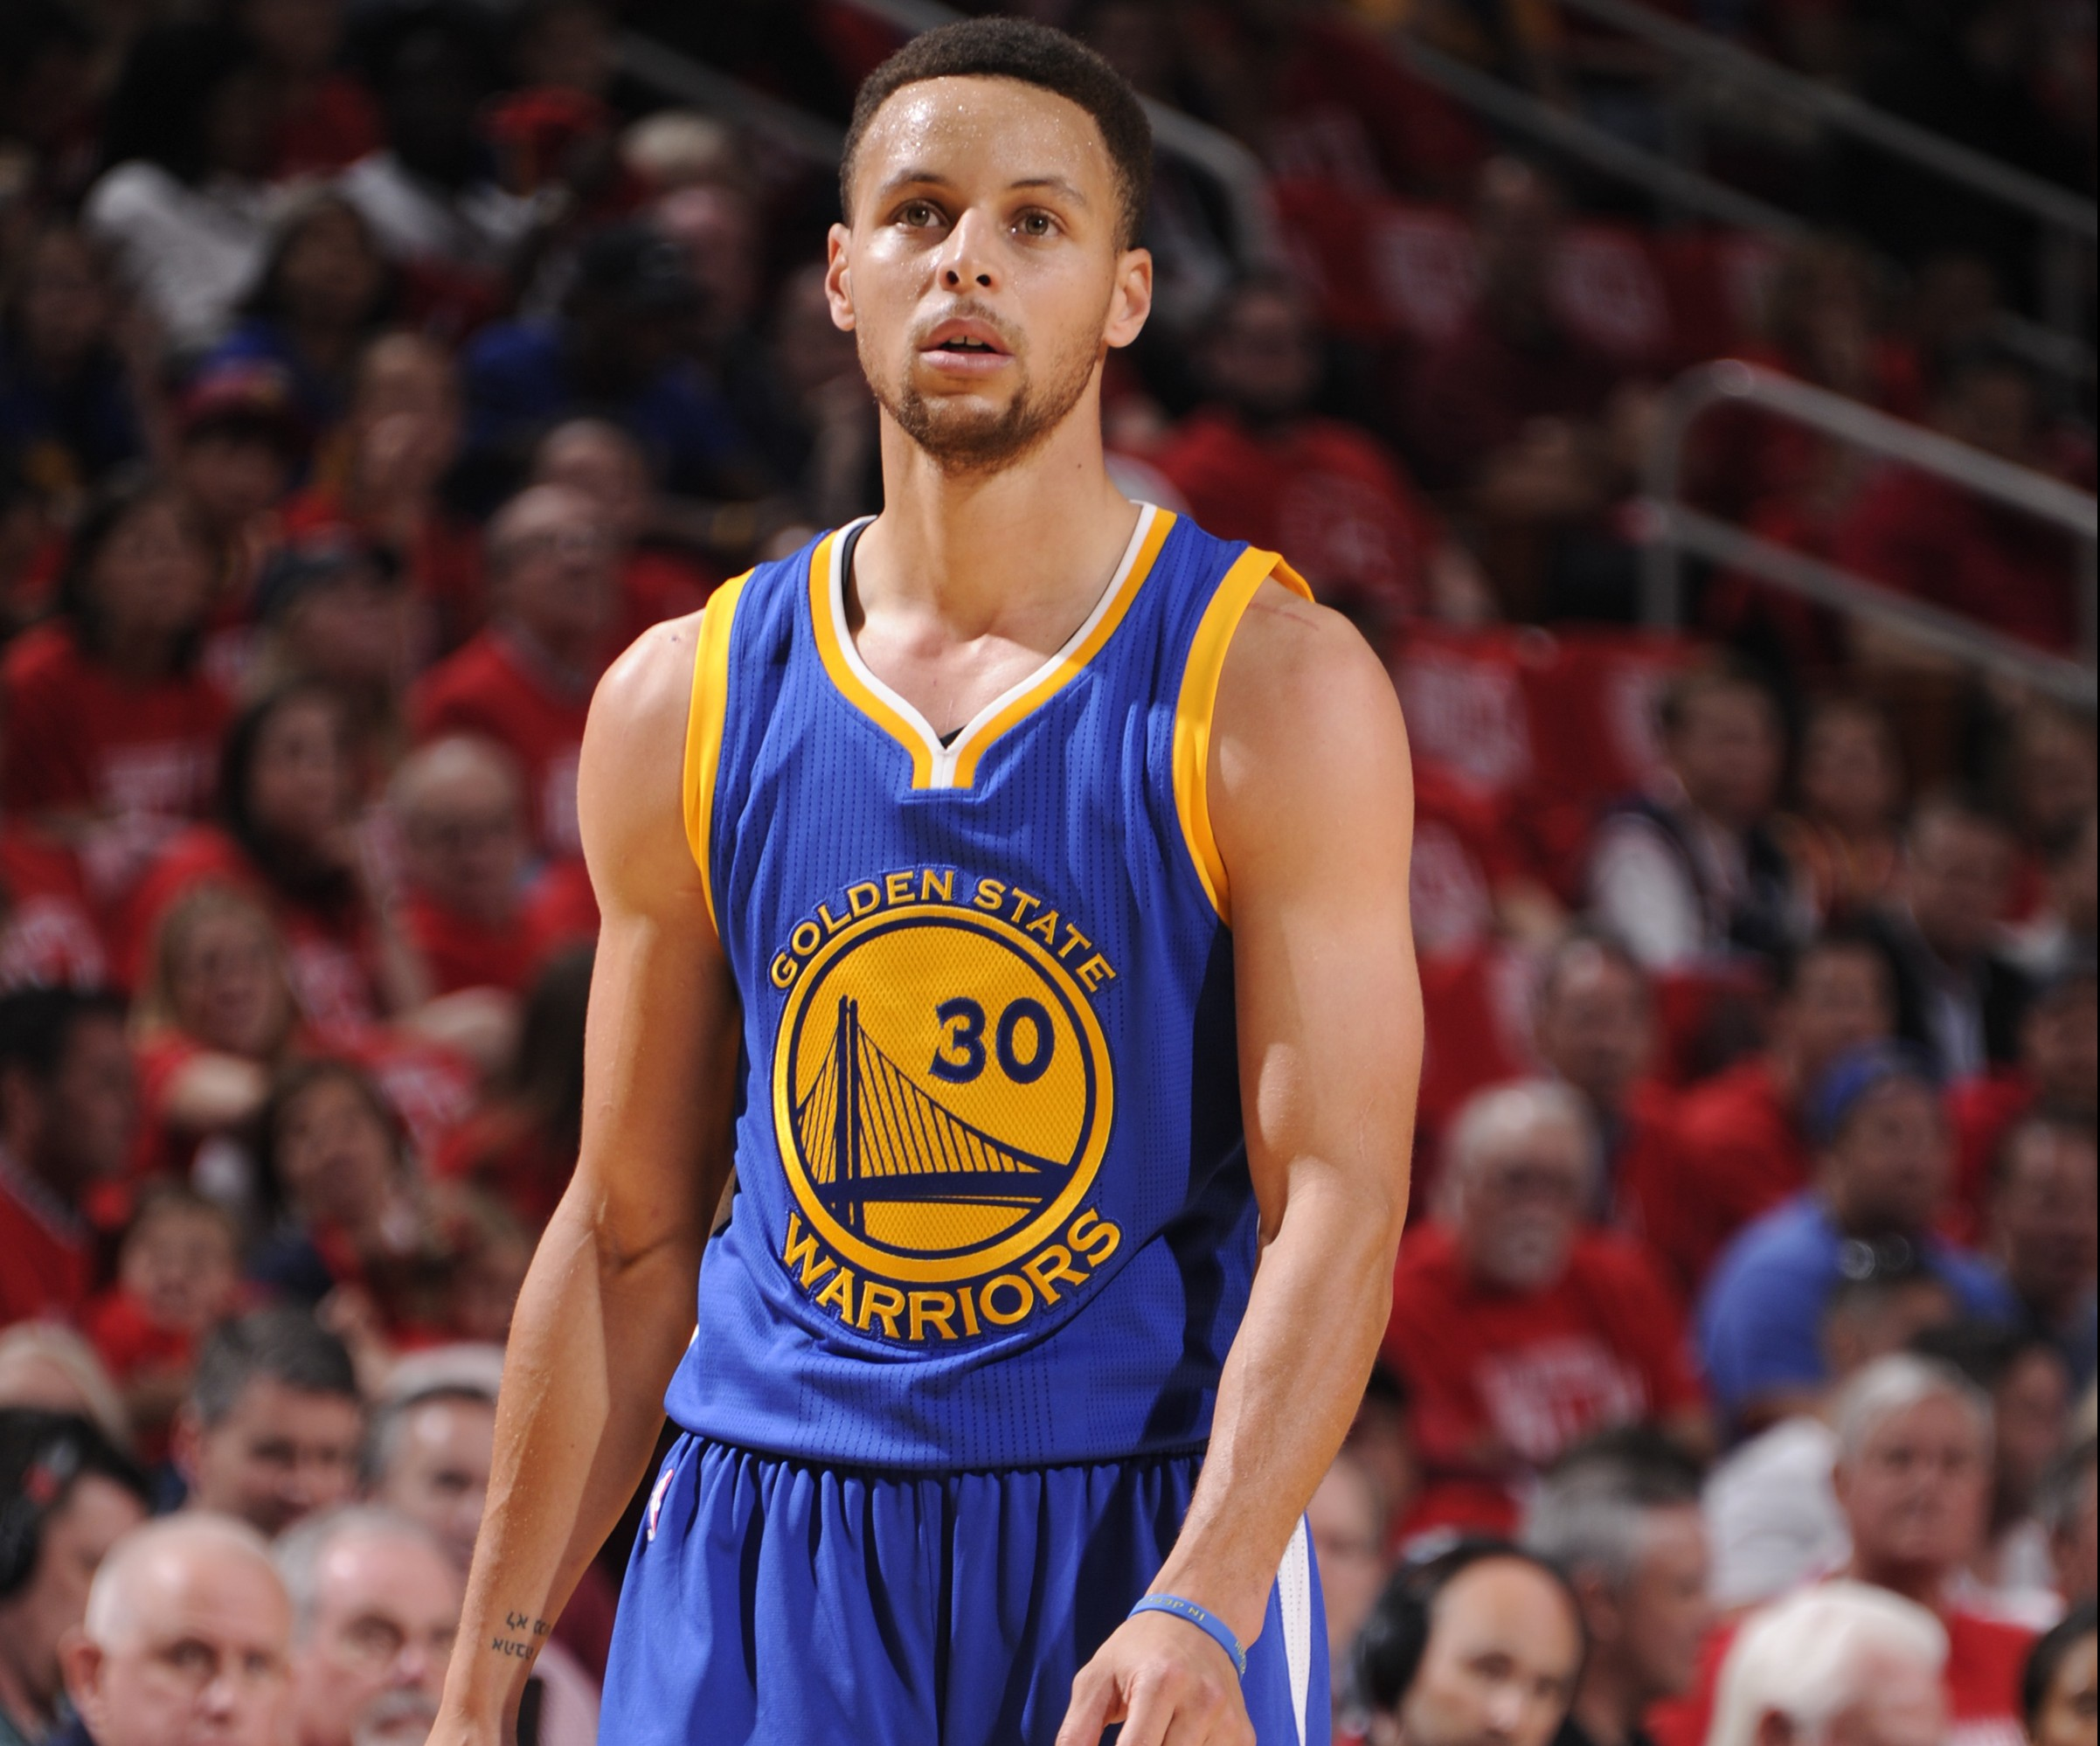 HOUSTON, TX - APRIL 24: Stephen Curry #30 of the Golden State Warriors stands on the court against the Houston Rockets in Game Four of the Western Conference Quarterfinals during the 2016 NBA Playoffs on April 24, 2016 at the Toyota Center in Houston, Texas. NOTE TO USER: User expressly acknowledges and agrees that, by downloading and or using this photograph, User is consenting to the terms and conditions of the Getty Images License Agreement. Mandatory Copyright Notice: Copyright 2016 NBAE   Bill Baptist/NBAE via Getty Images/AFP